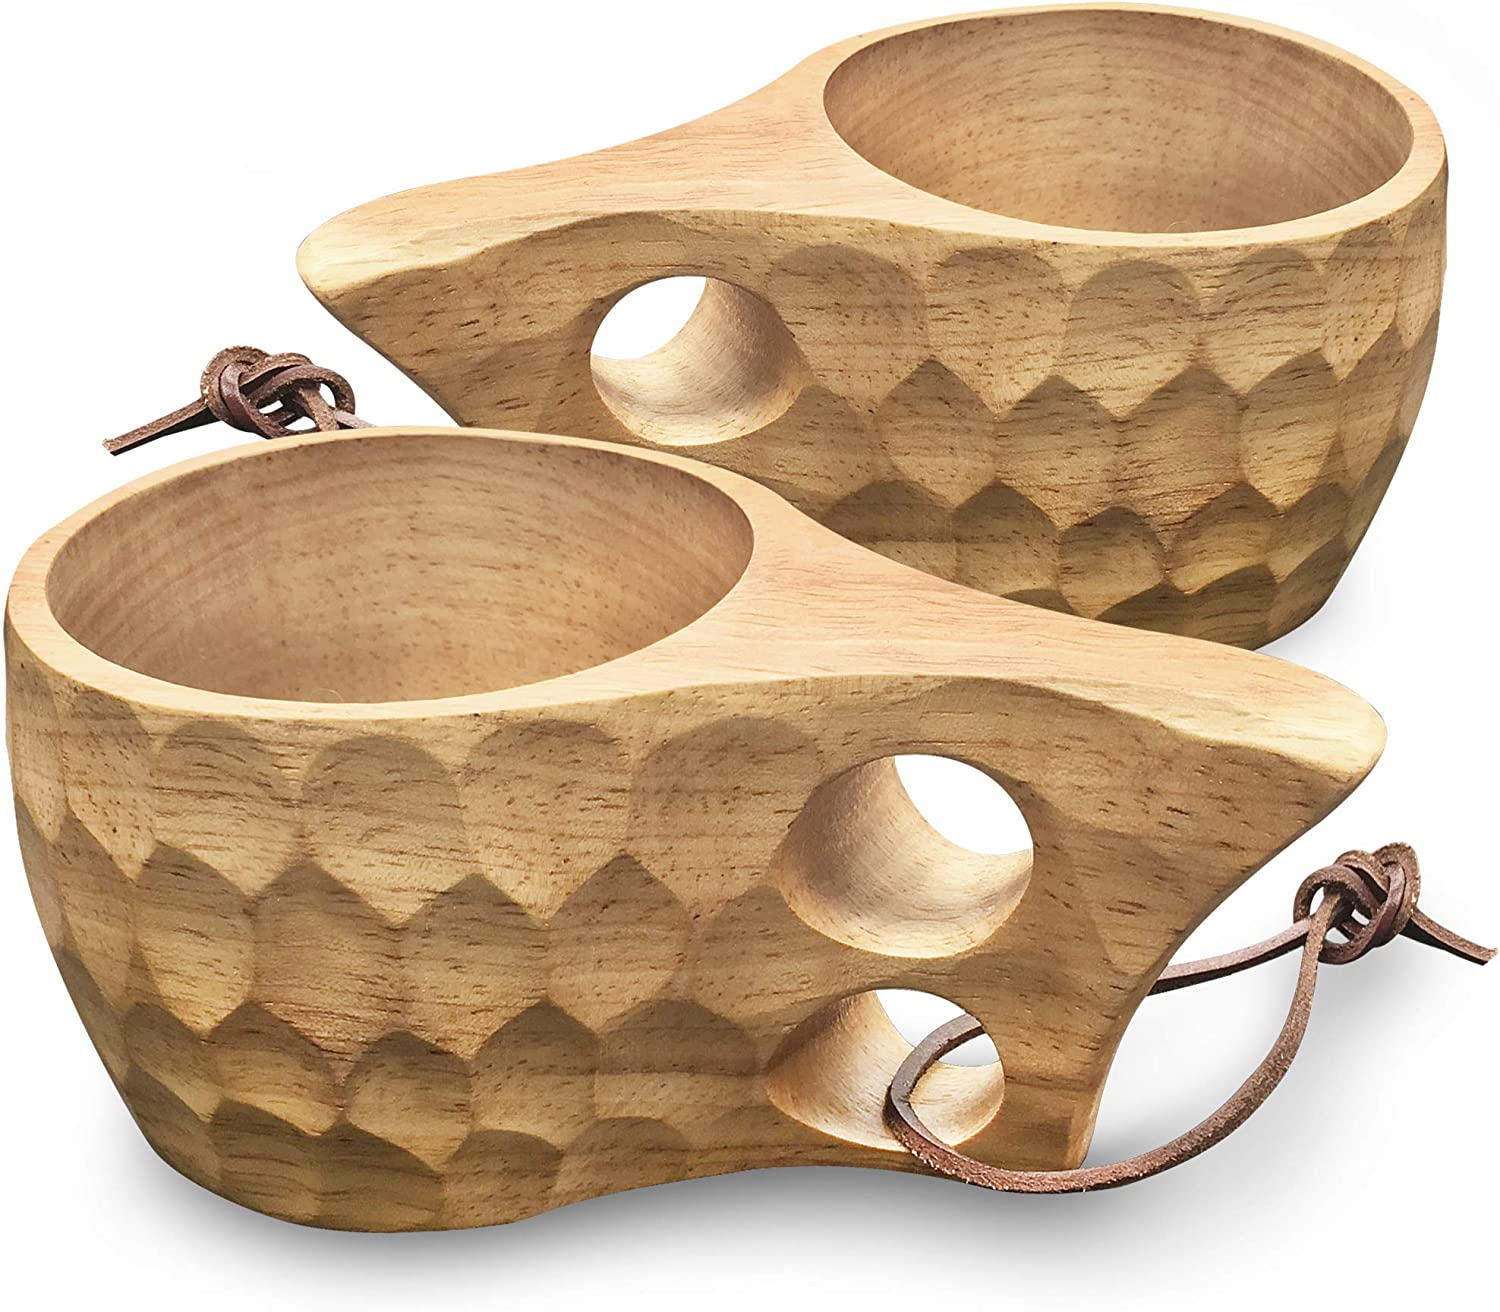 Riosupply Wooden Cup Traditional Coffee Mug with Leather Lanyard for Backpacking Camping Hiking Survival Teacup Nordic Style Kuksa Portable Outdoor Camping Drinking Cup